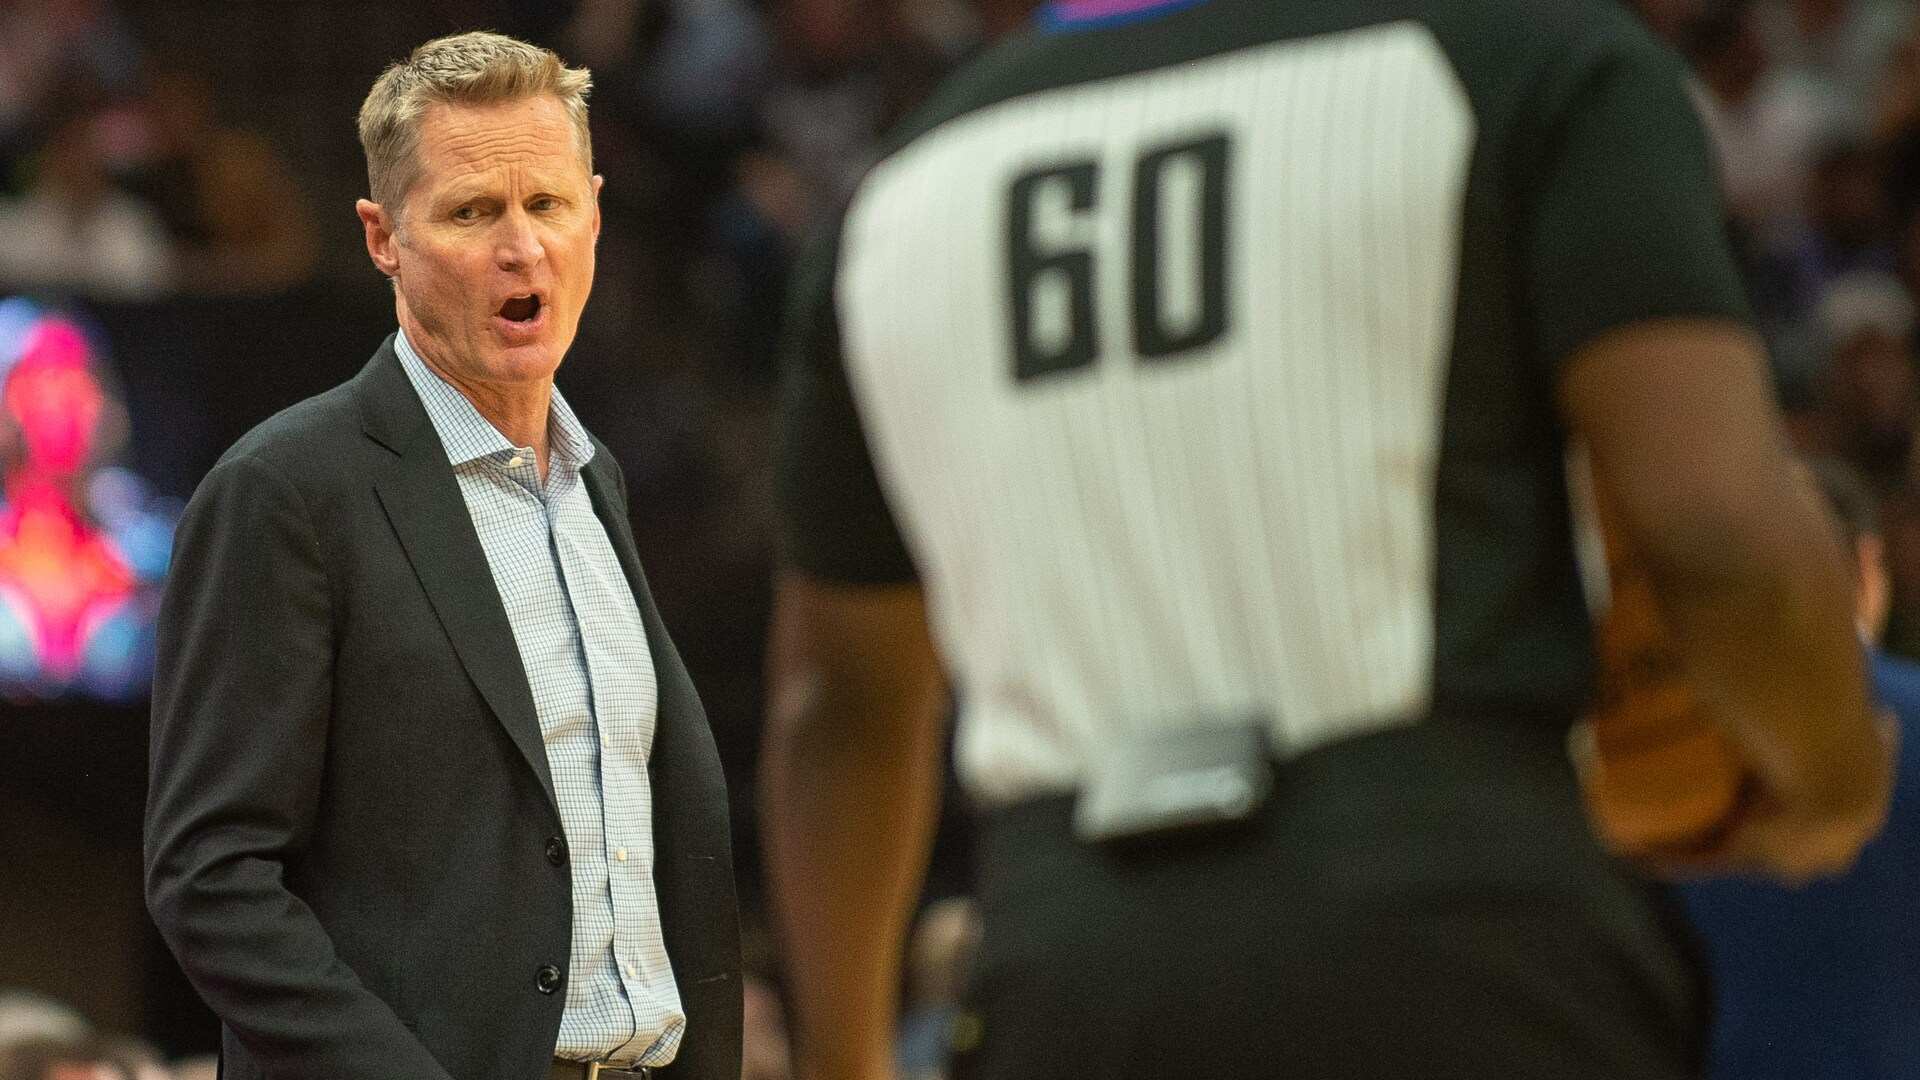 Steve Kerr draws $25K fine for actions after ejection